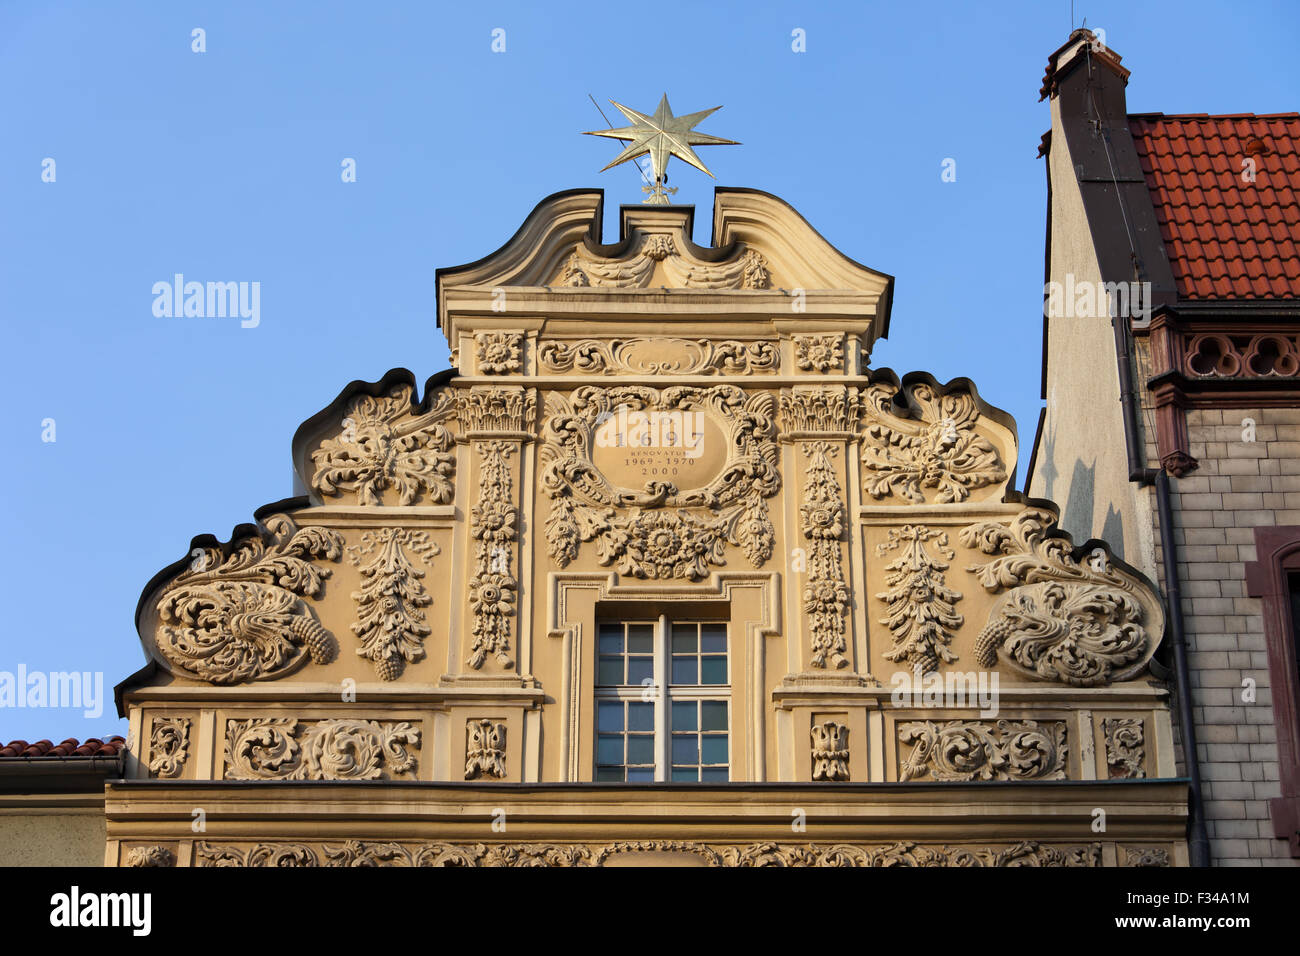 The Star House gable in Torun, Poland, 17th century house, facade decorated with Baroque ornaments. - Stock Image